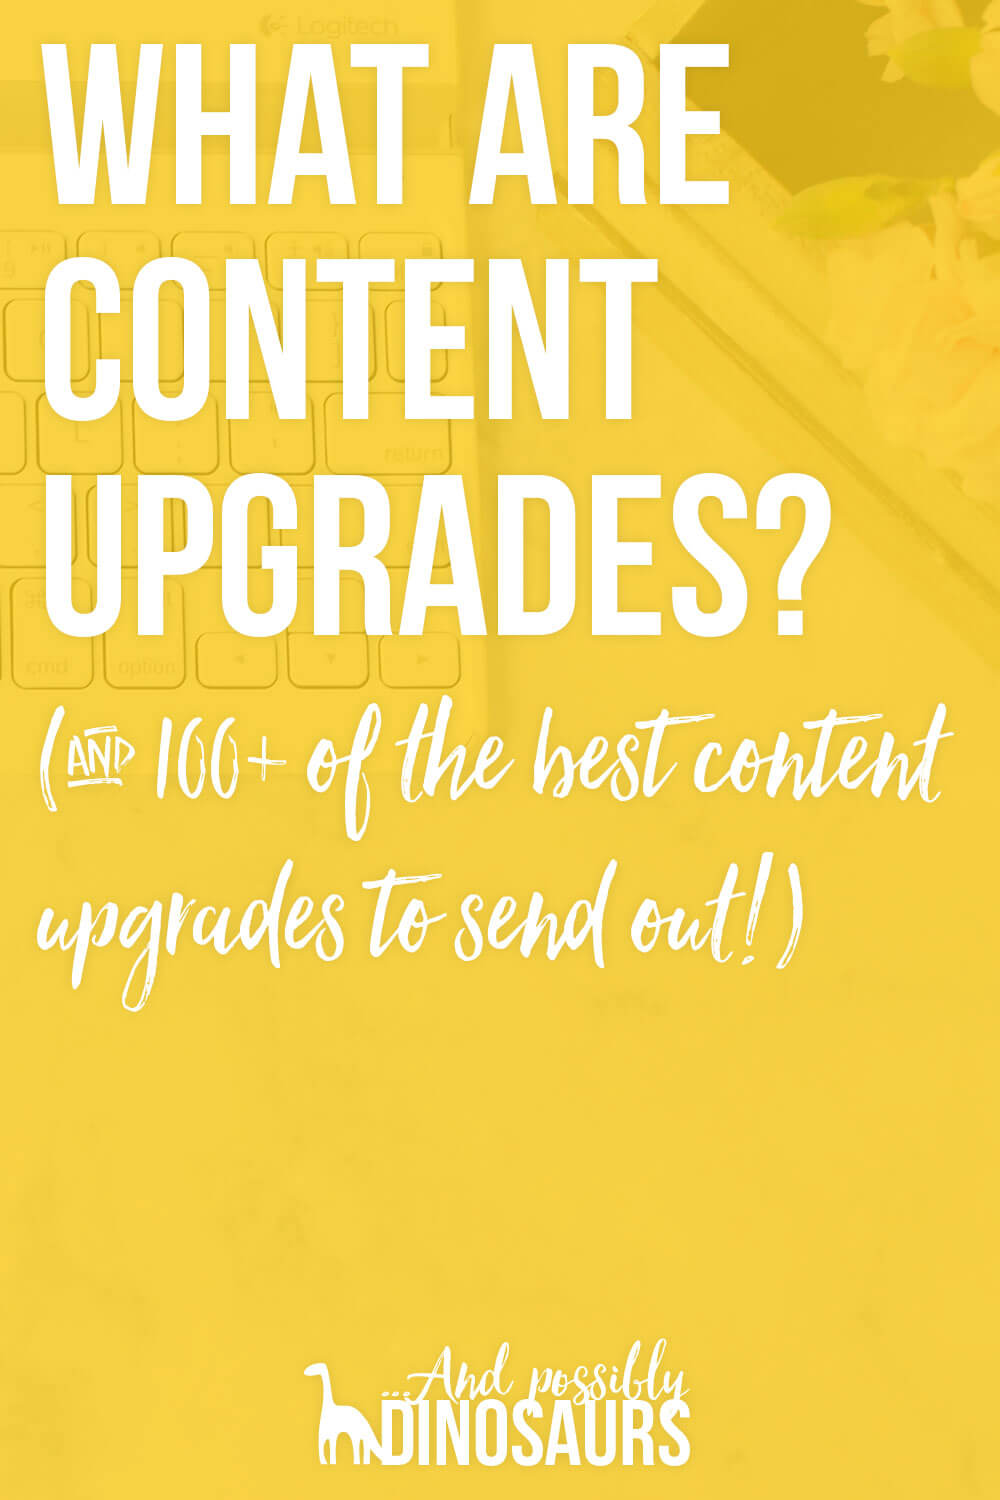 Trying to grow your email list as a blogger? You should try content upgrades! But what are content upgrades, you ask? Click through to find out, PLUS get a list of 100+ content upgrades to send to your email list!